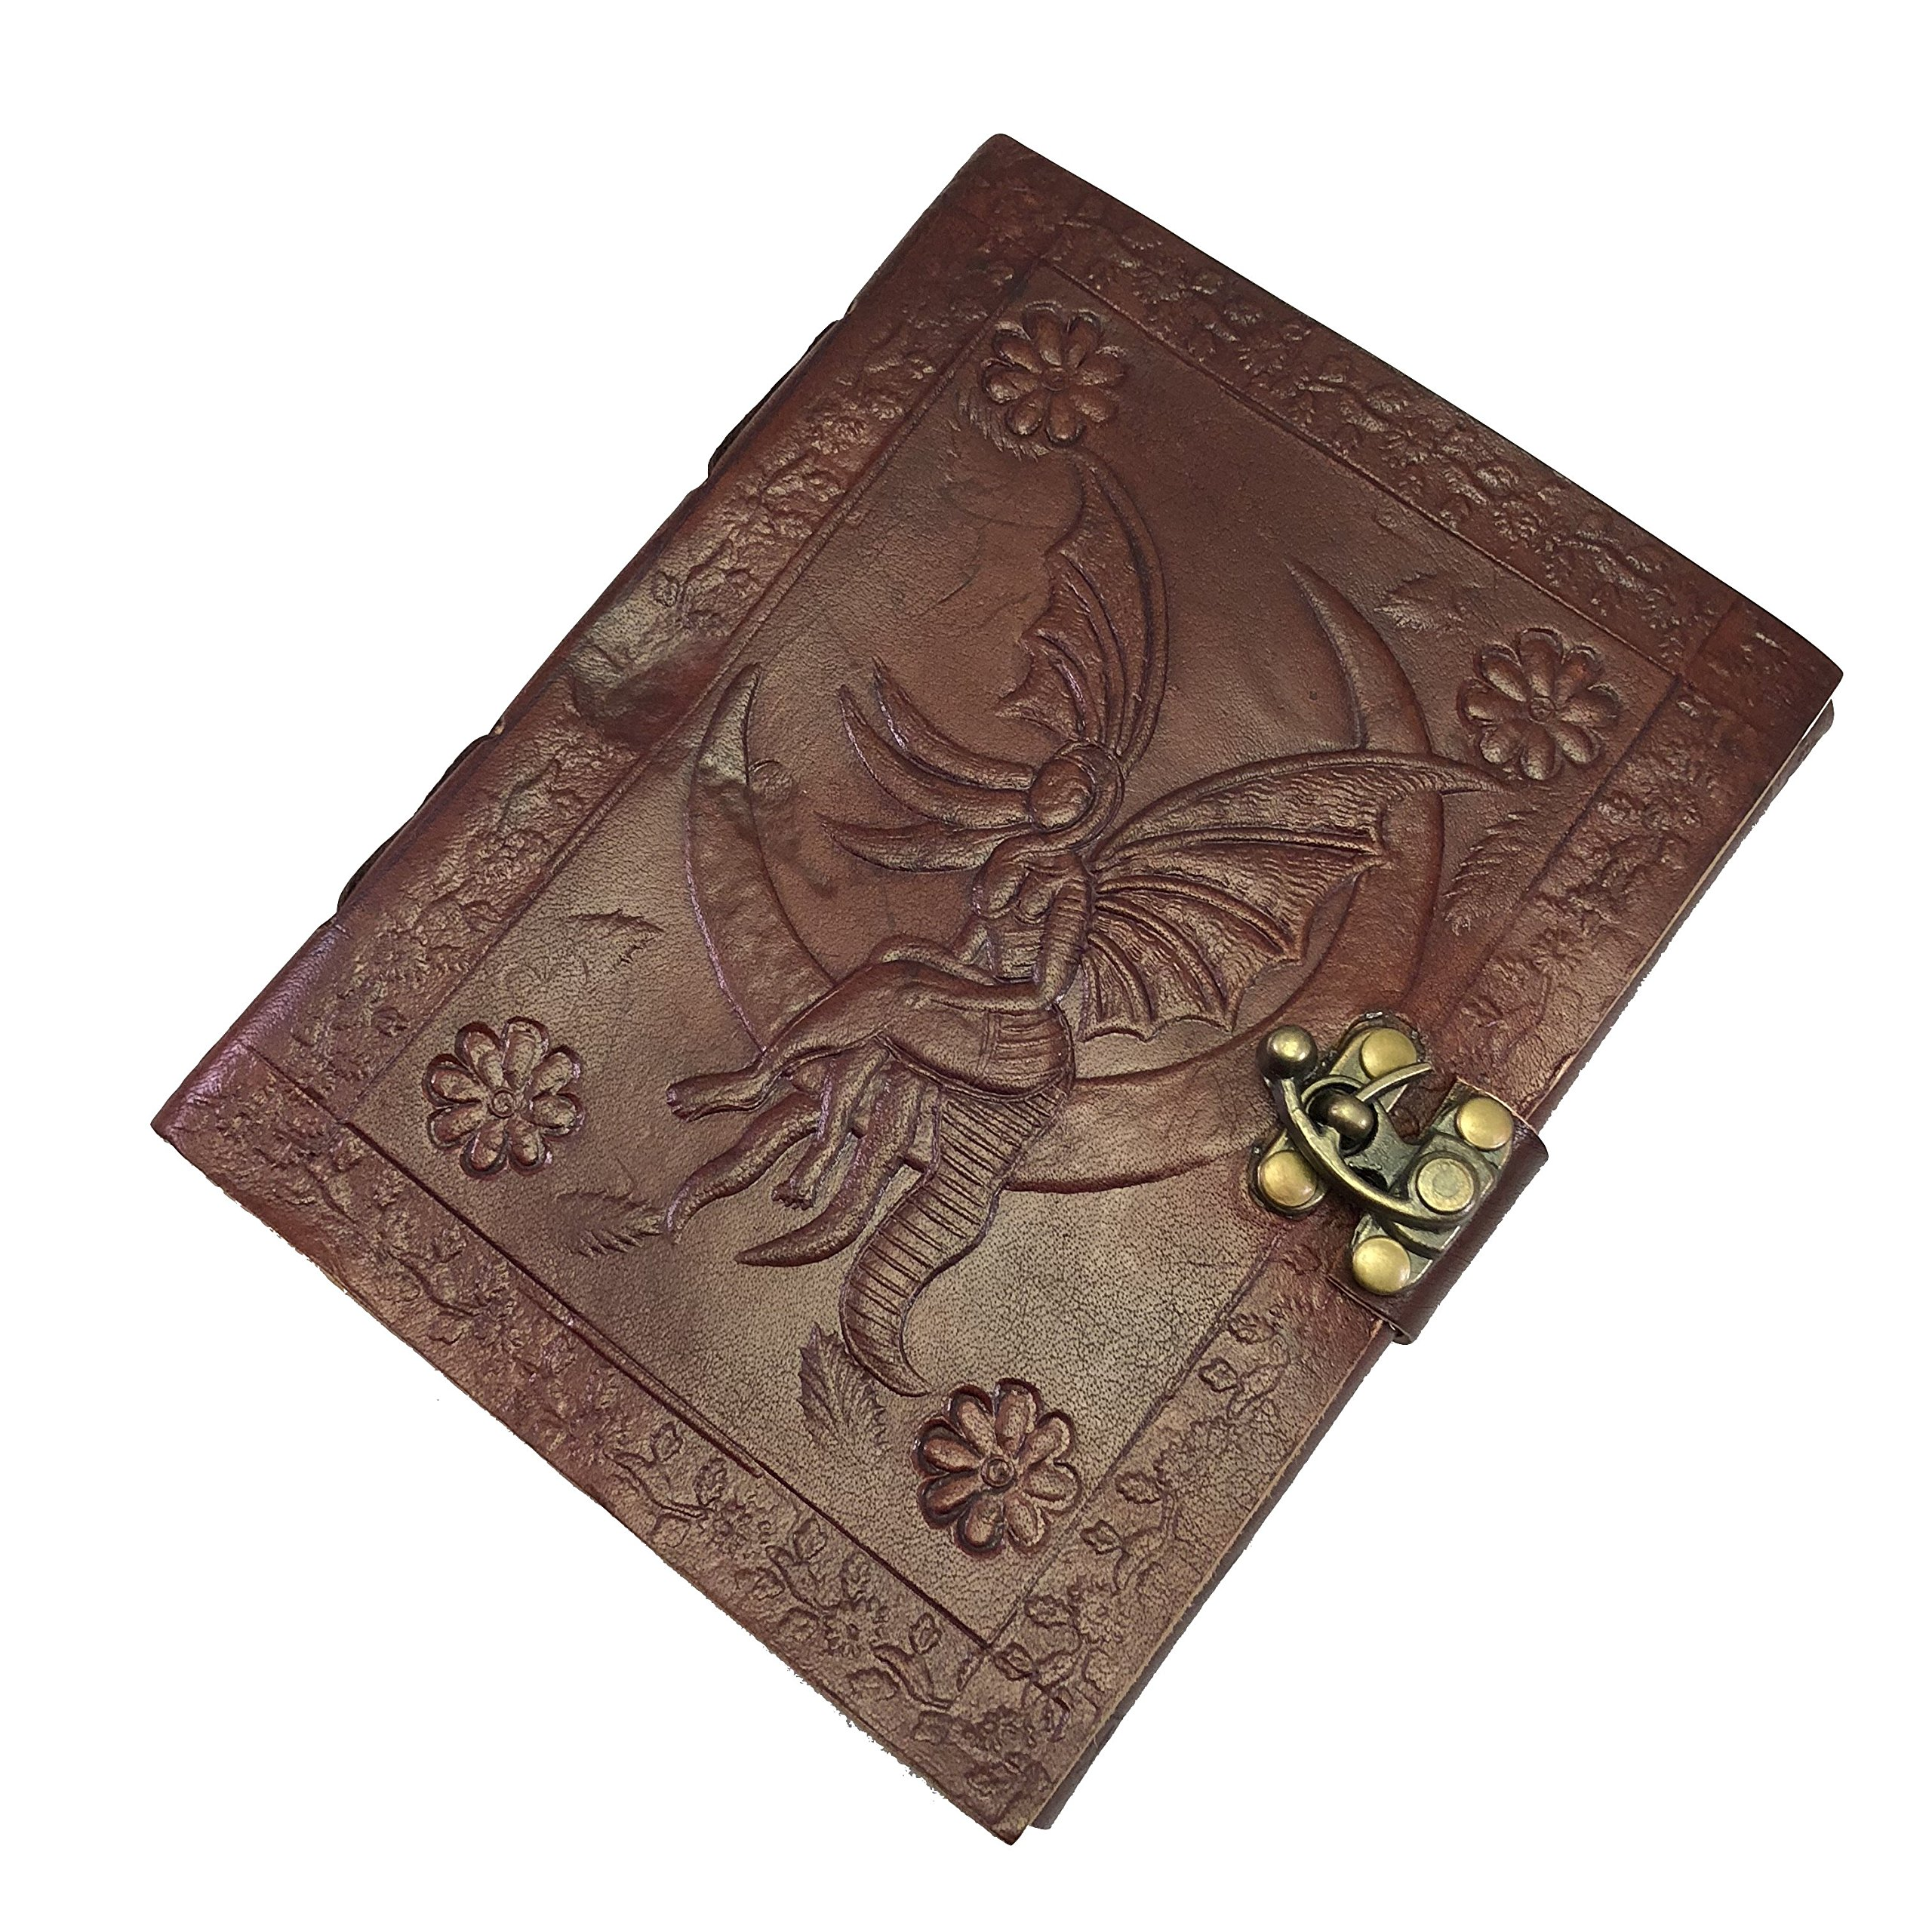 Genuine Leather Journal Fairy on the Moon - Handmade Real Leather Bound Book - Recycled Paper – Vintage Style For Creative Writing, Sketching, Dream Diary or Travel Journaling – Fairy Gift Idea 5 x 7''